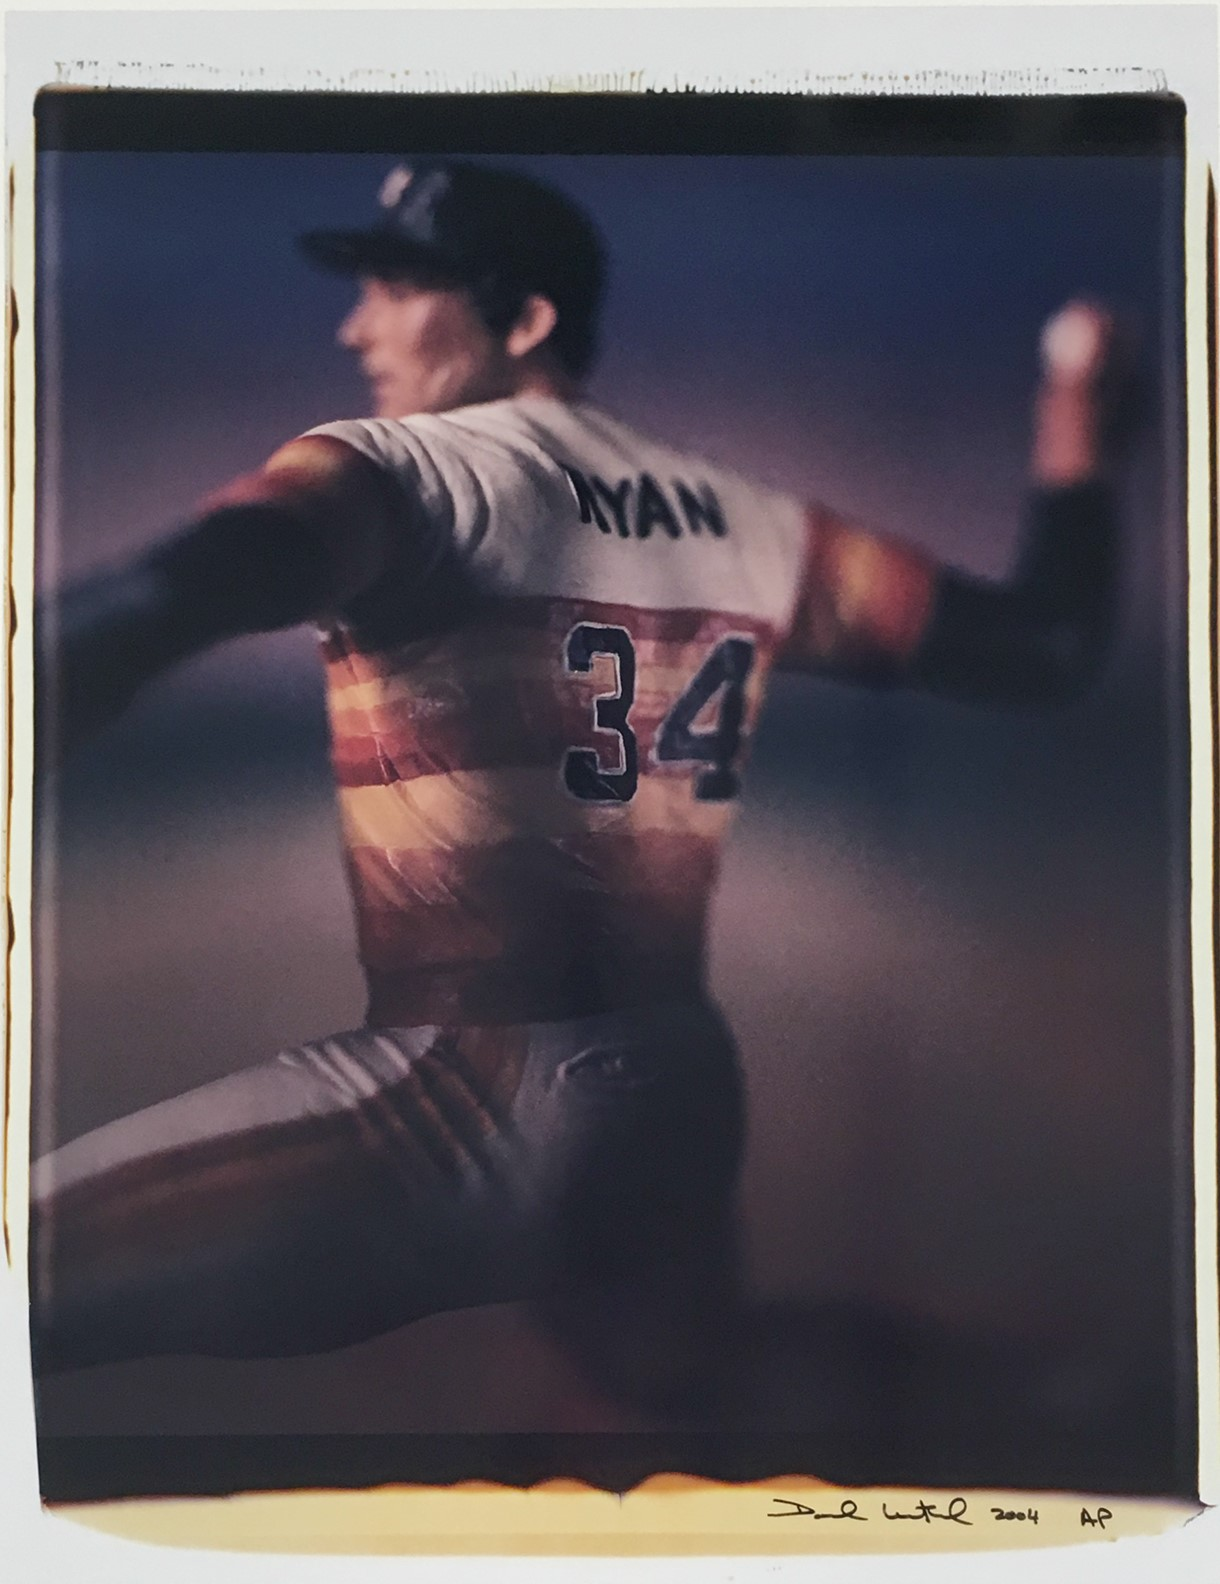 FOR ASTROS OFFER ONLY - Levinthal, Nolan Ryan